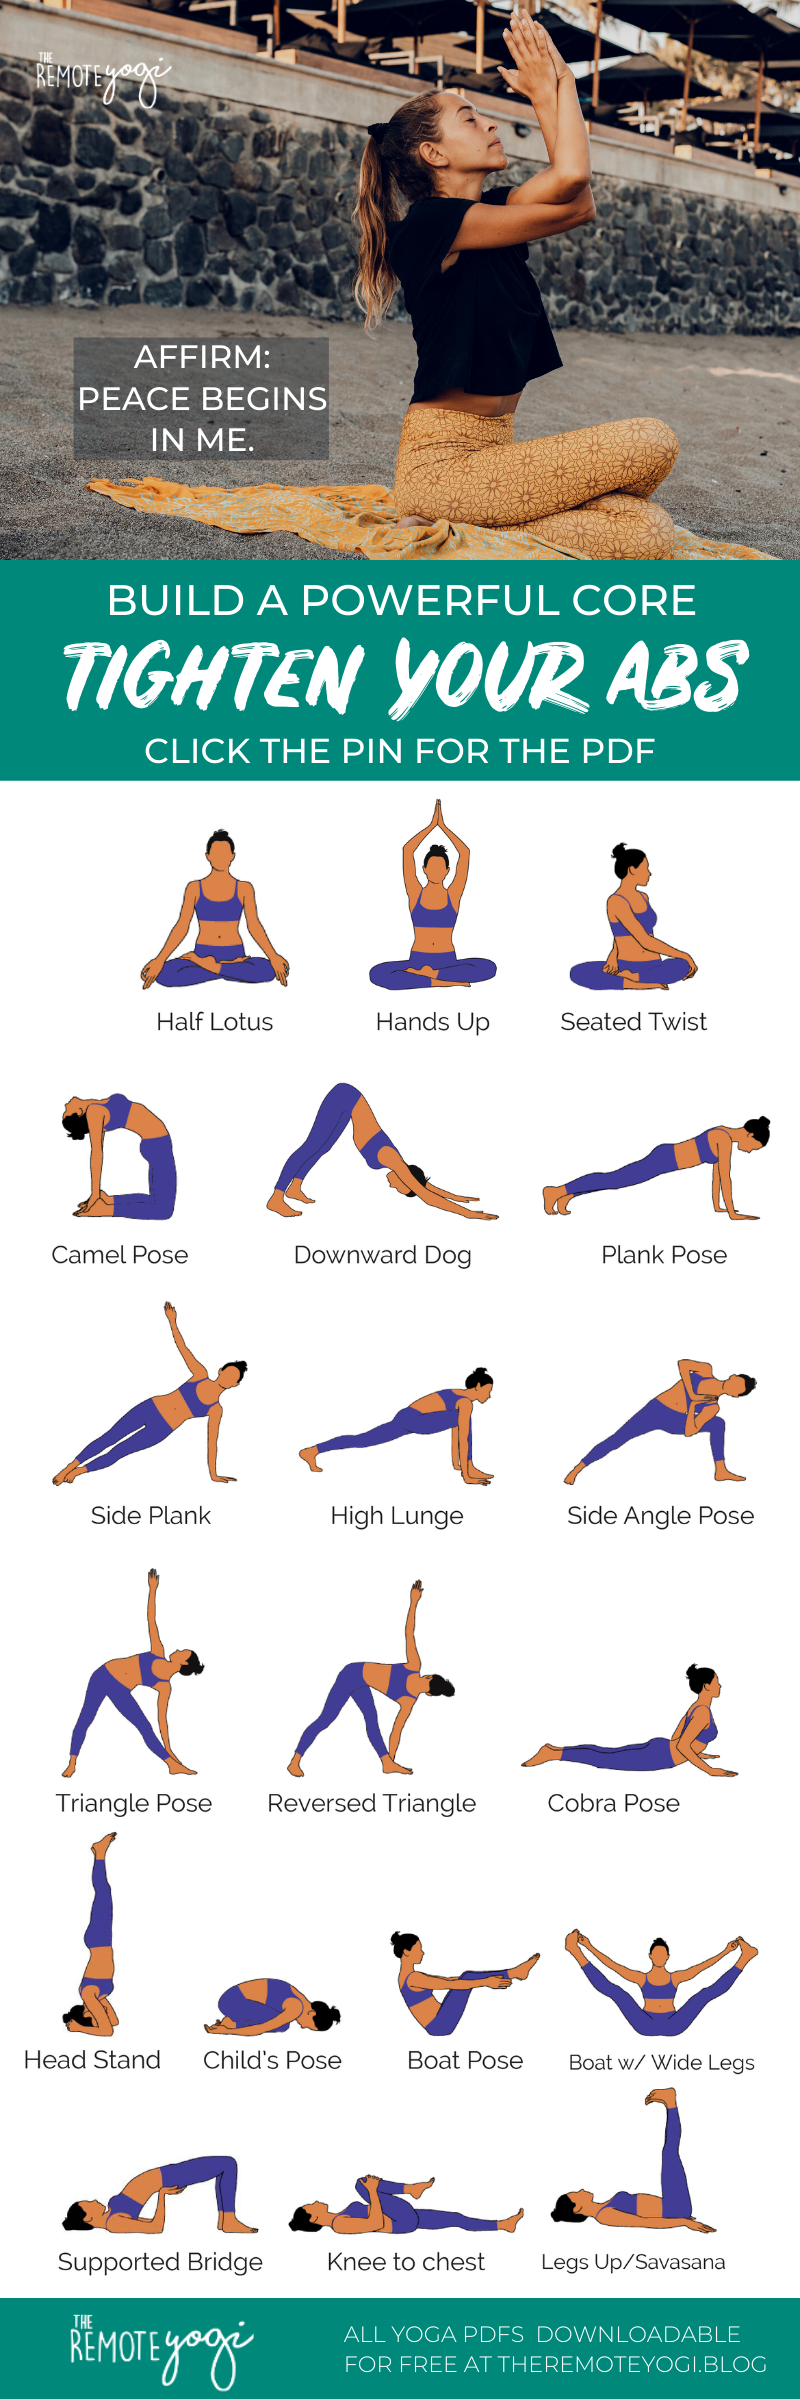 Powerful Yoga to Tighten Your Abs Core